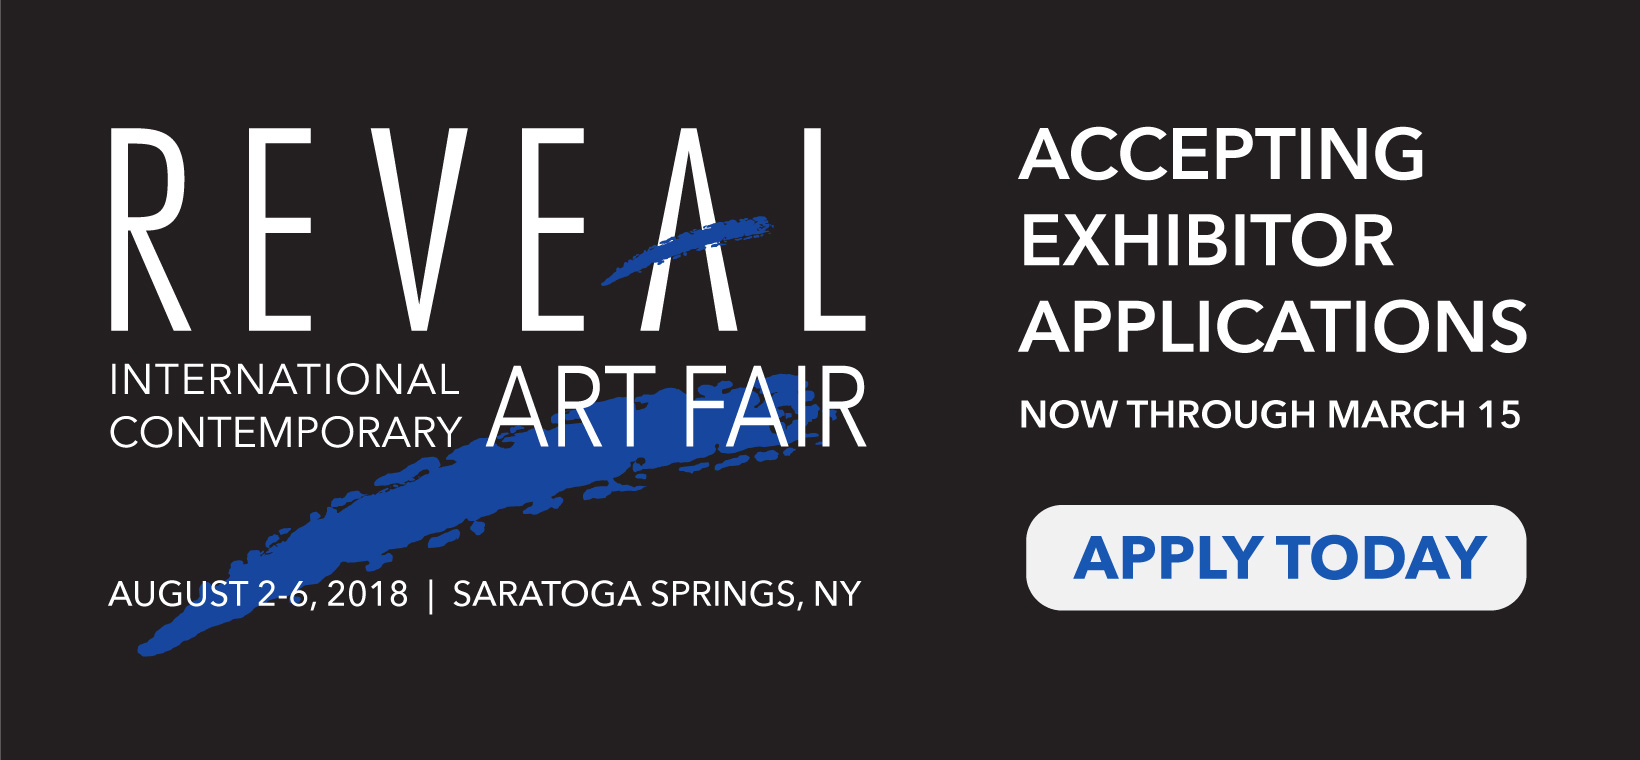 Apply today for 2018 REVEAL Art Fair